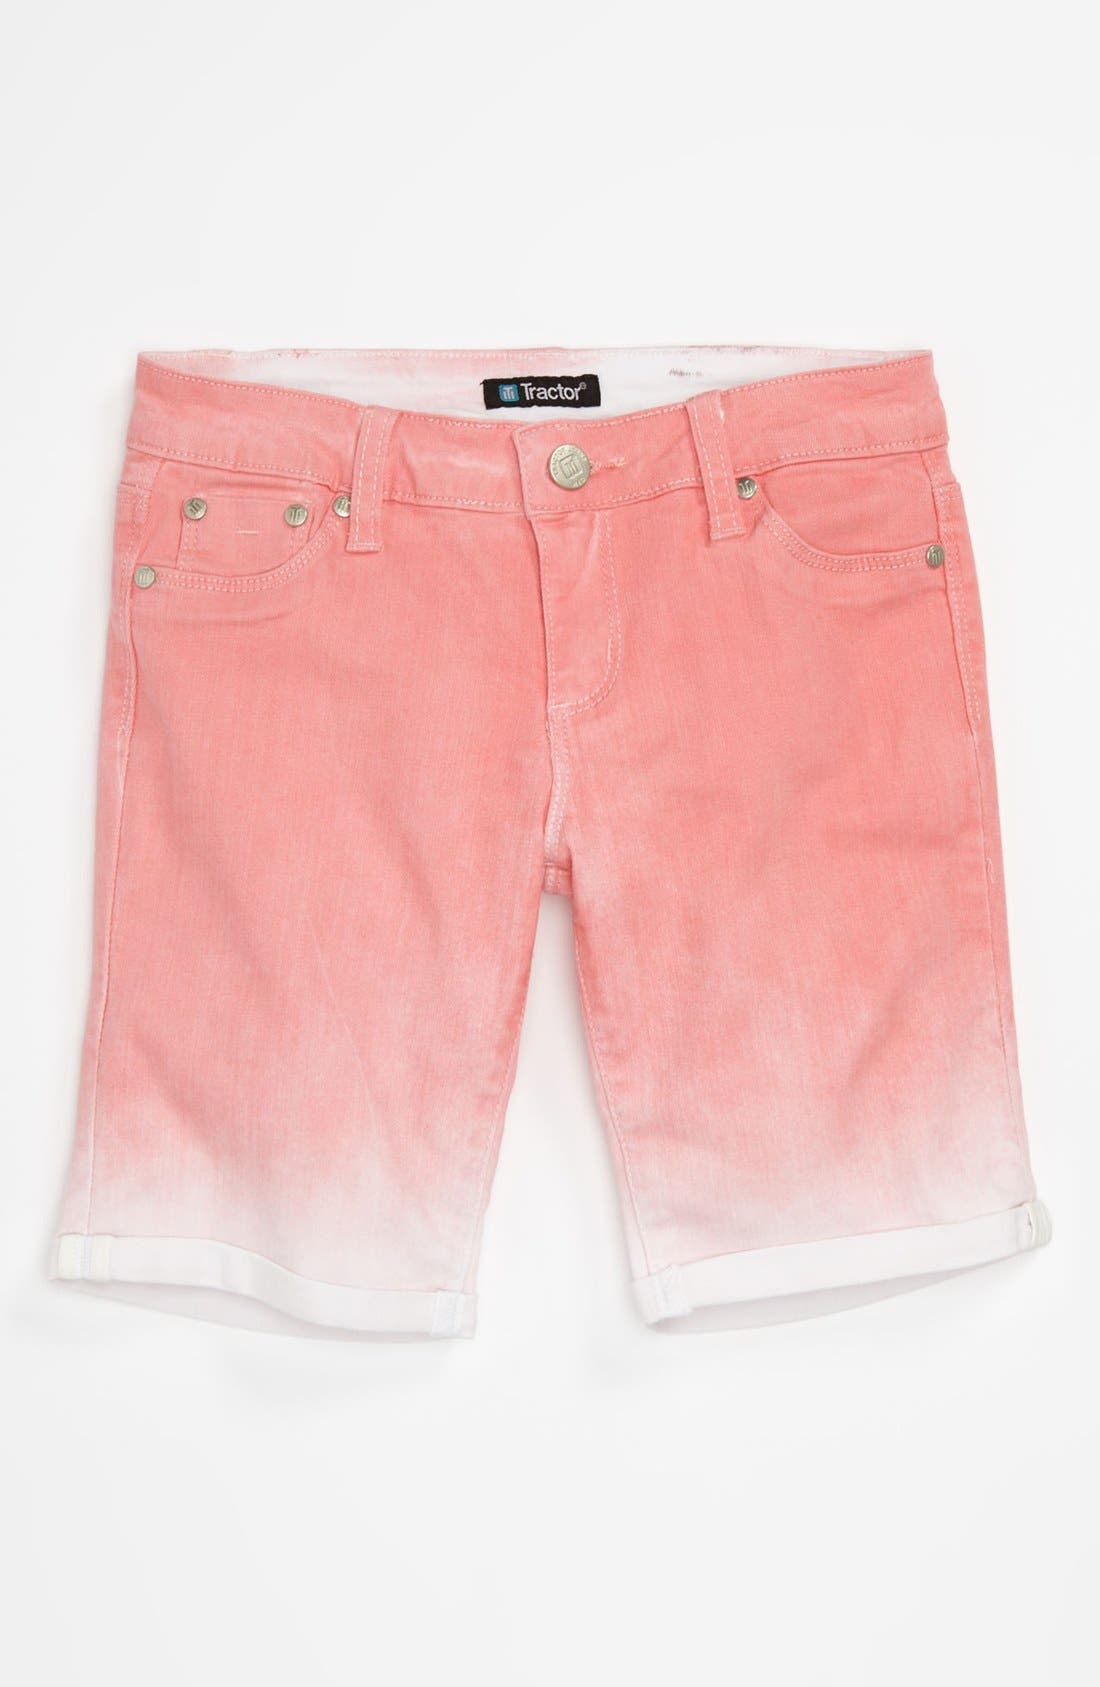 Alternate Image 1 Selected - Tractr Ombré Bermuda Shorts (Big Girls)